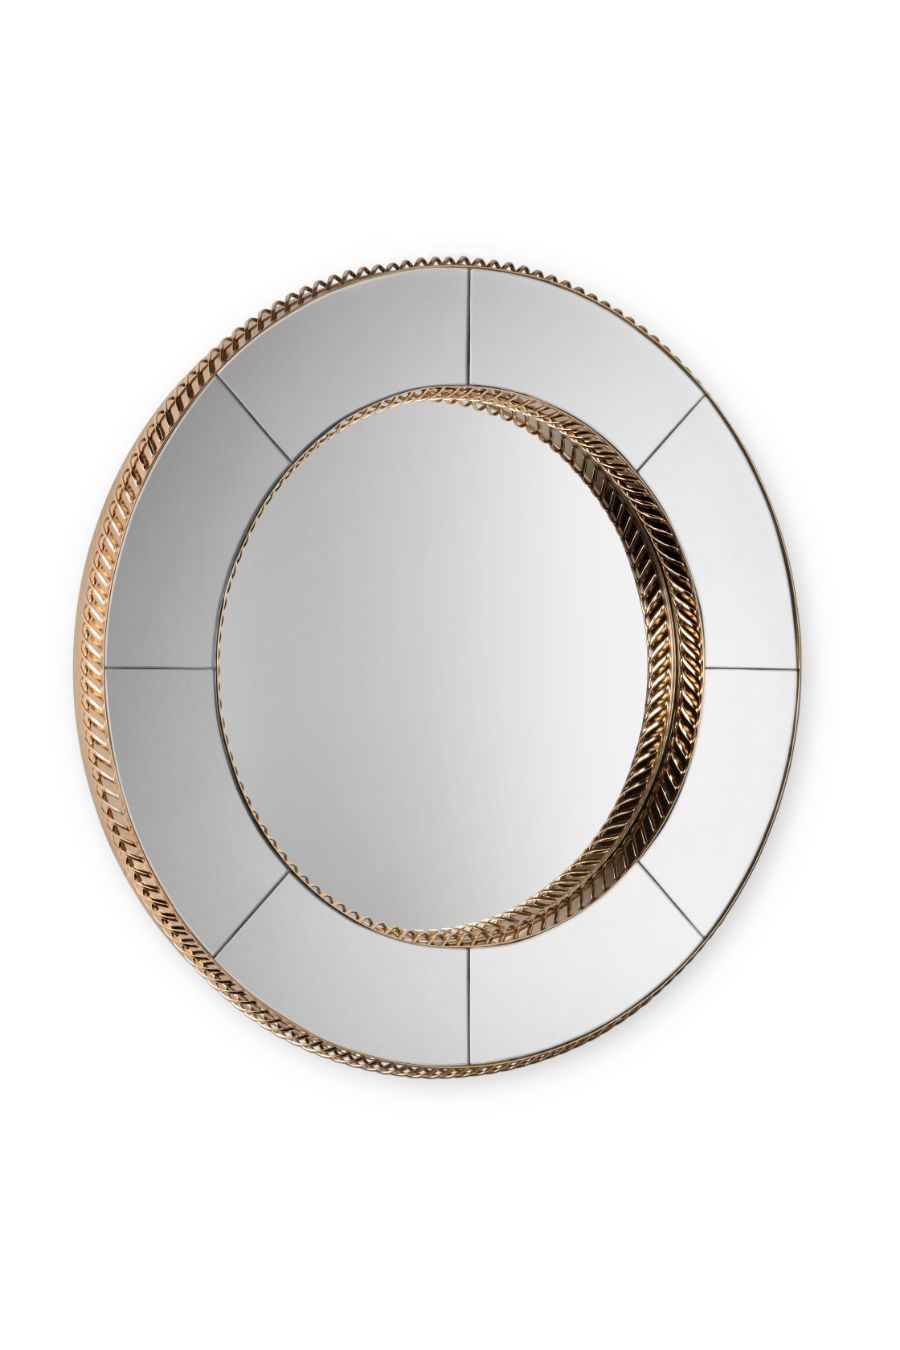 Mirror Mirror on the Wall, Which one is the Fiercest of them All 25 mirror on the wall Mirror Mirror on the Wall, Which one is the Fiercest of Them All 25 Mirror Mirror on the Wall What is the Fiercest of them All 15